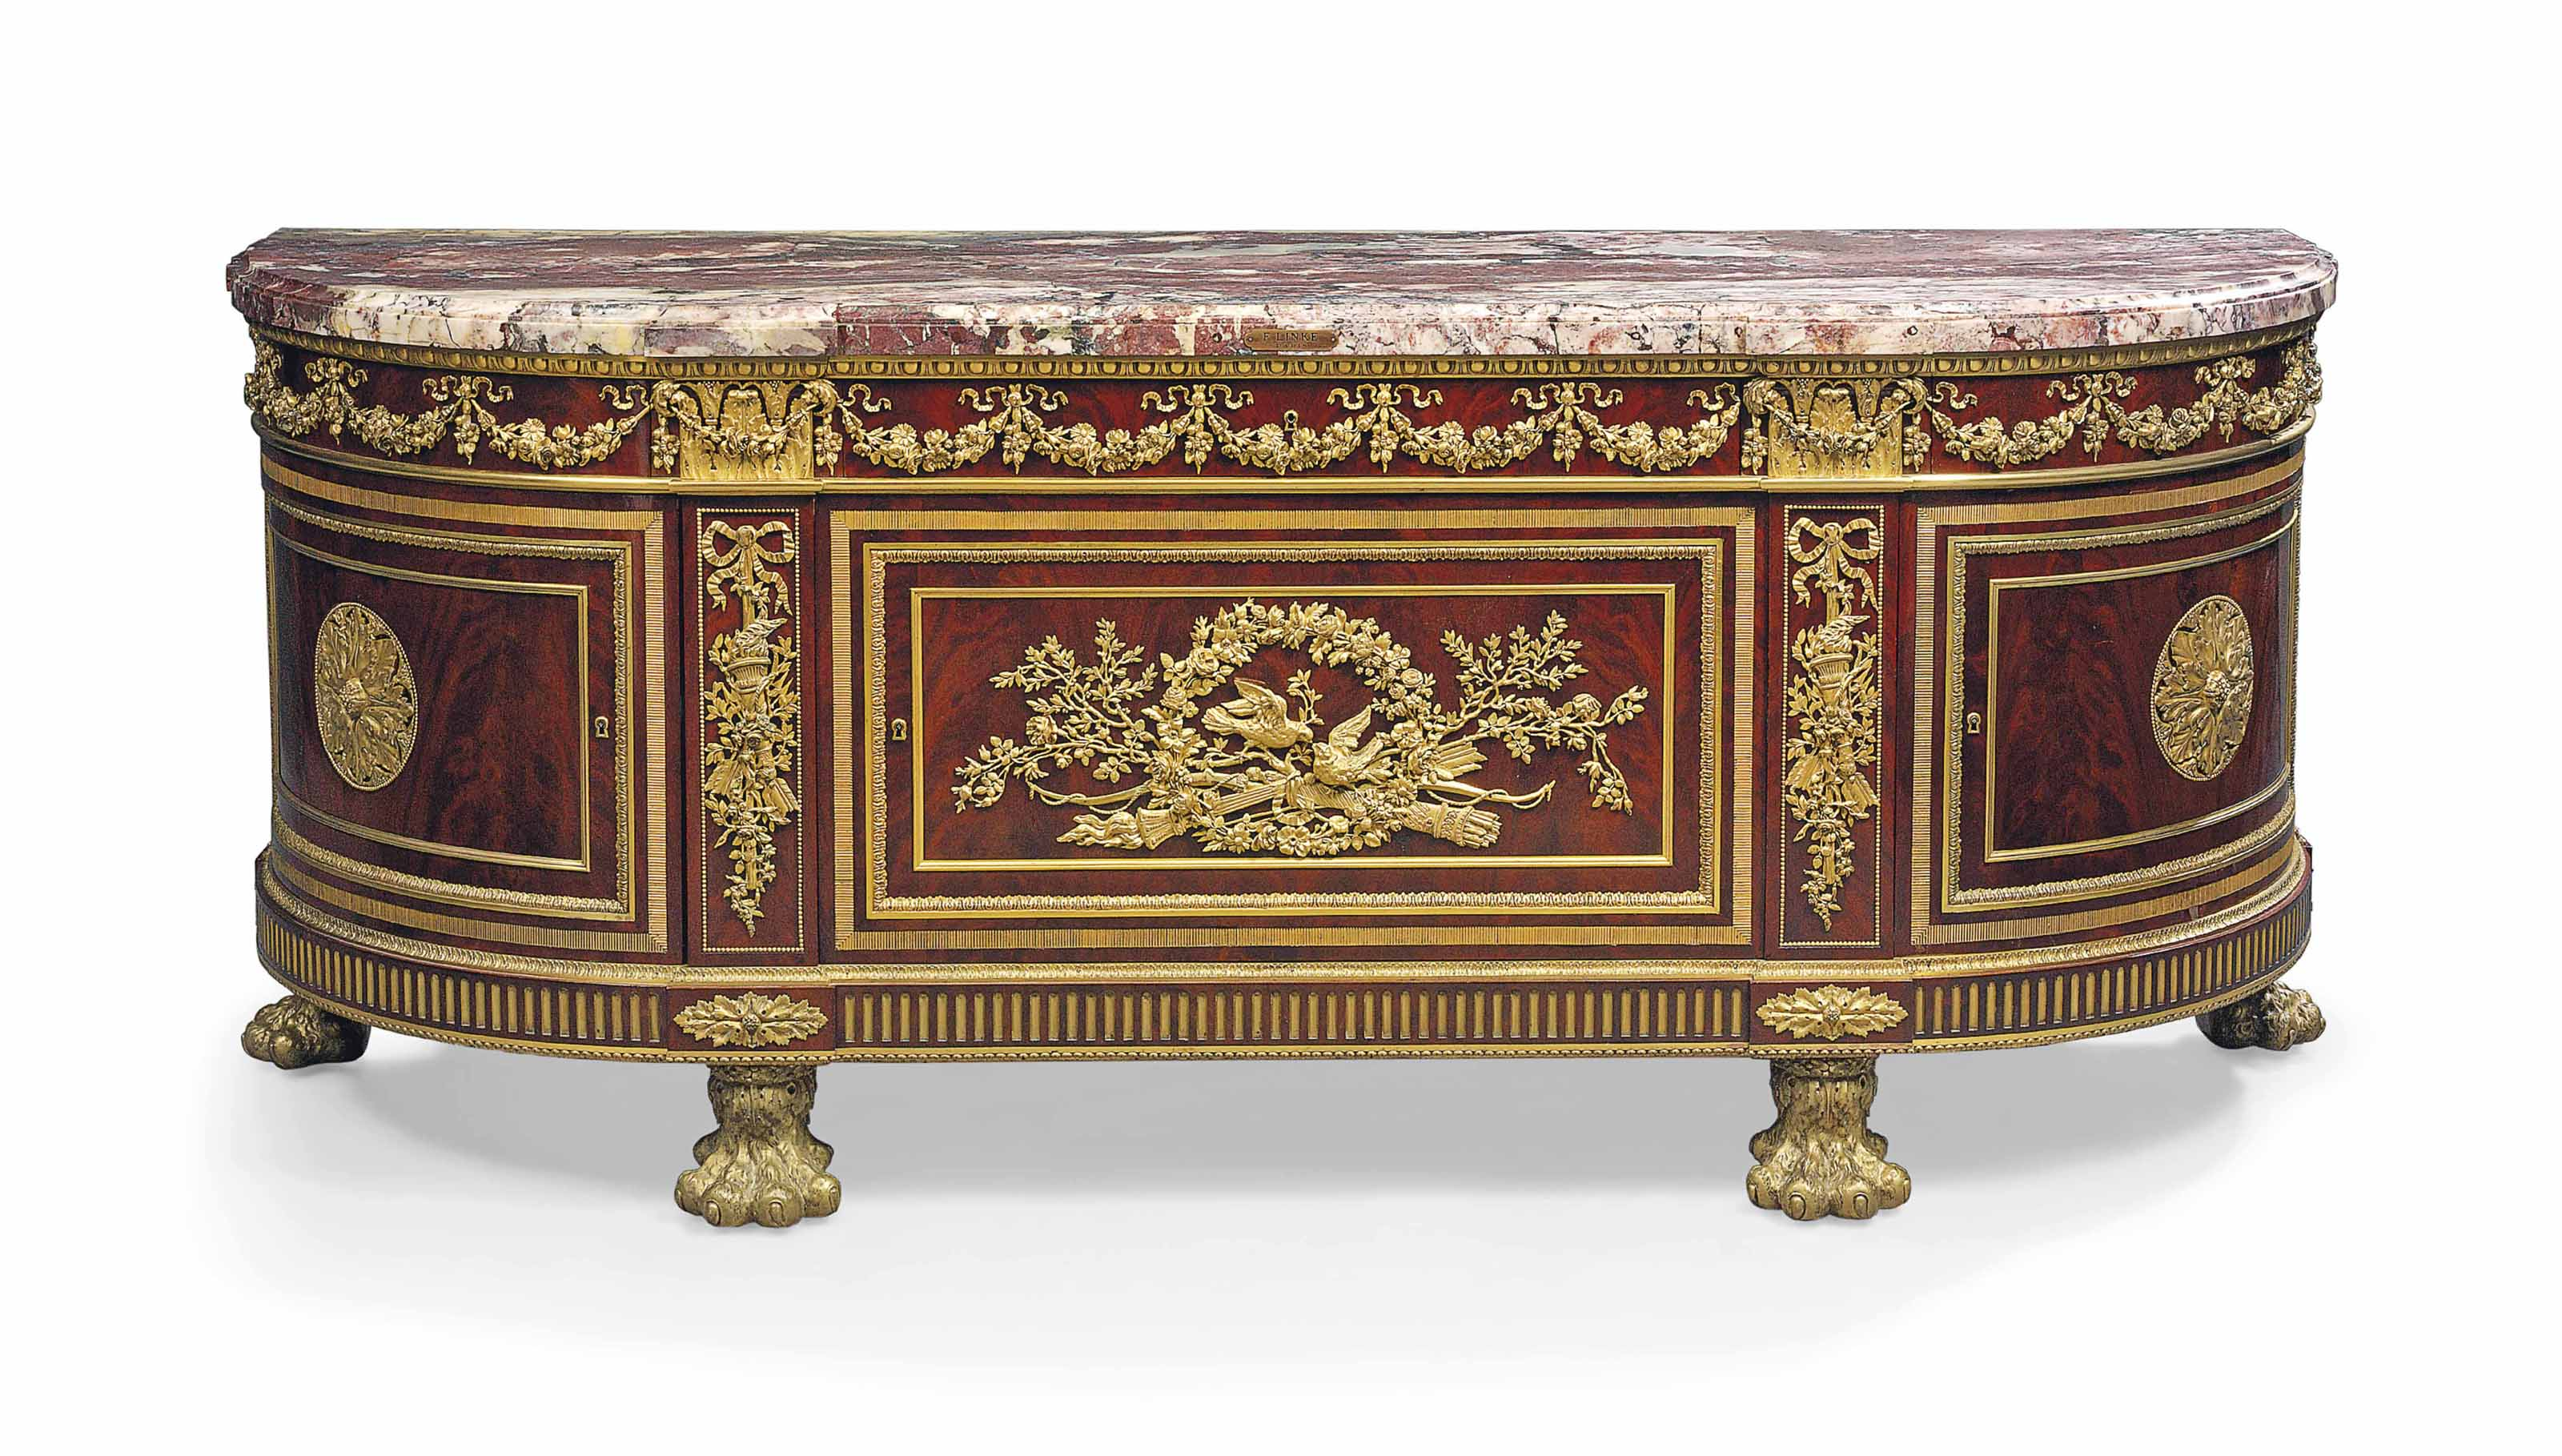 A FRENCH ORMOLU-MOUNTED MAHOGANY COMMODE